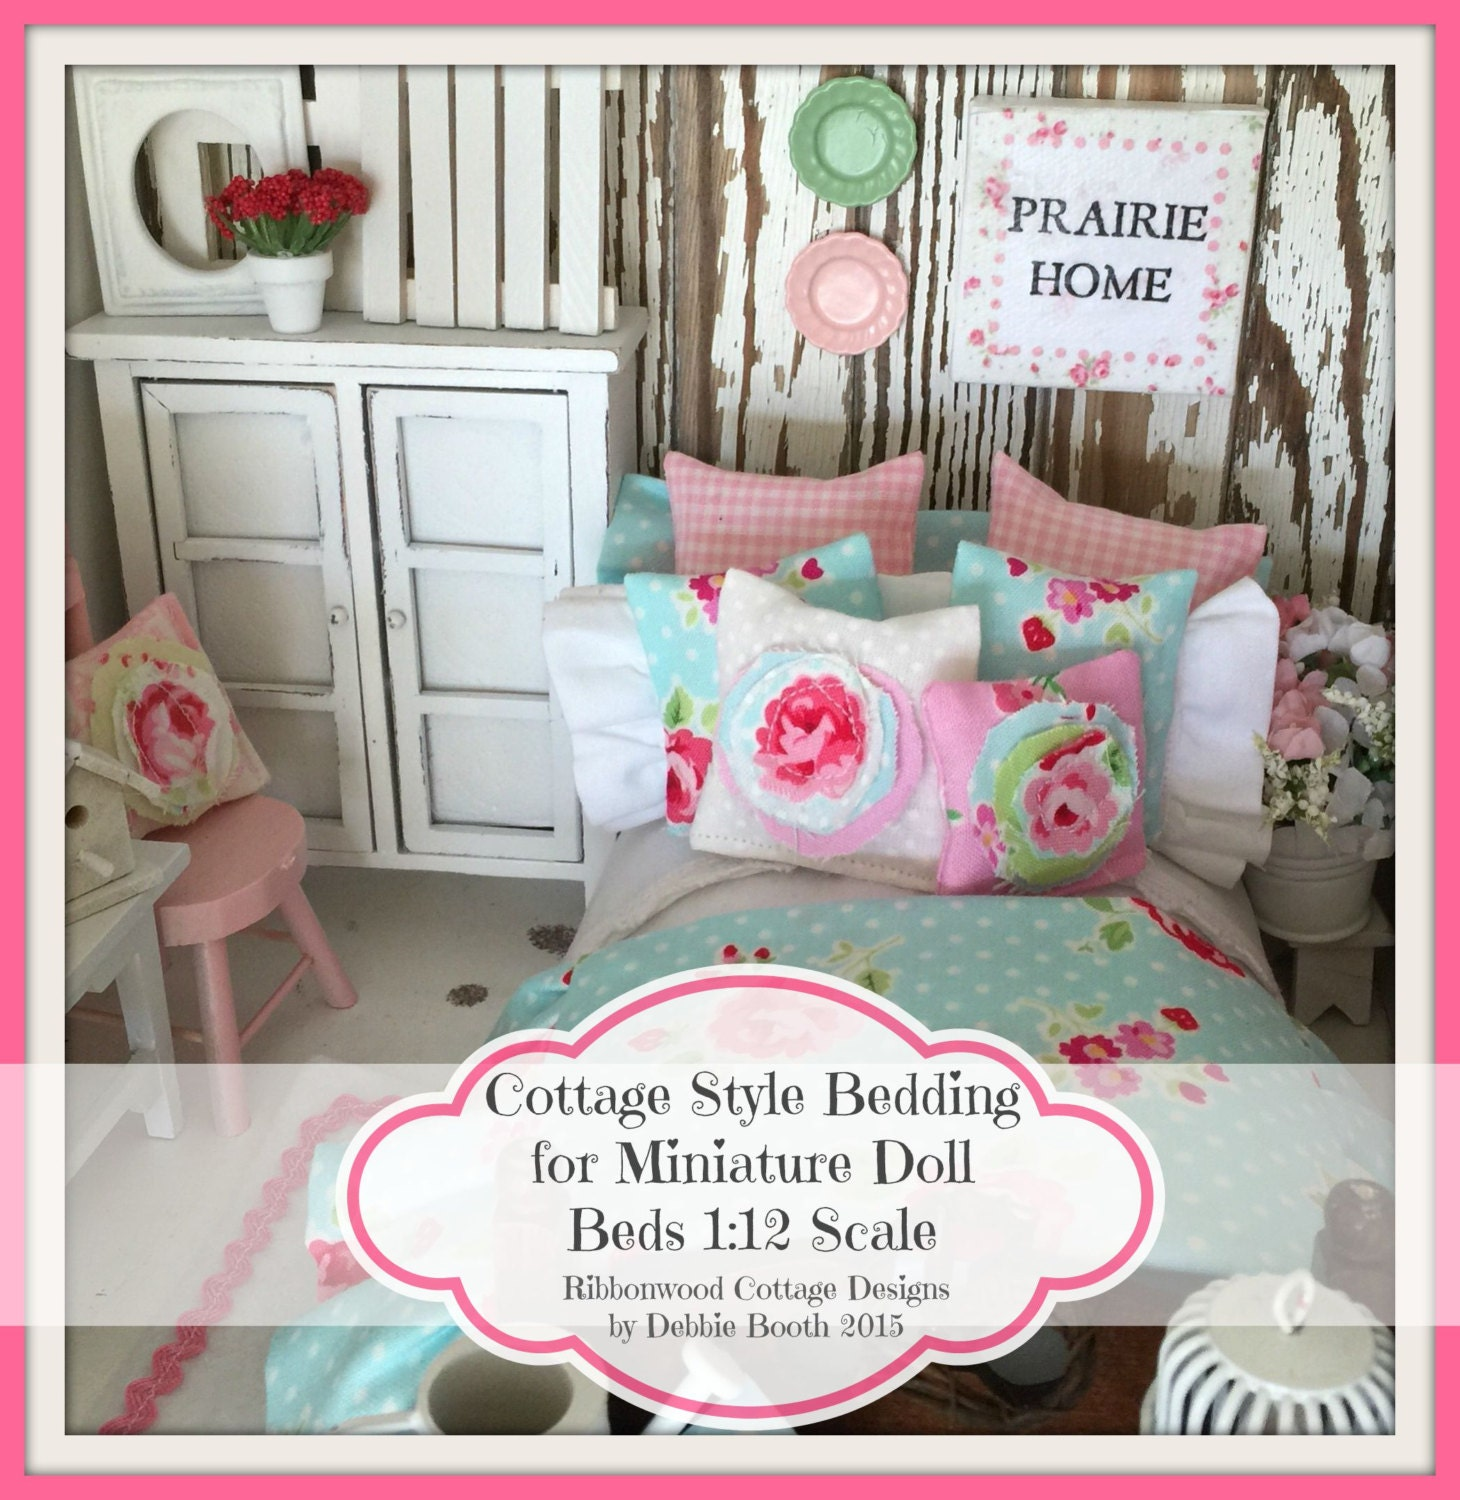 quilts beds doxies miniature dahlias tiny bed to doll diy dolls from and